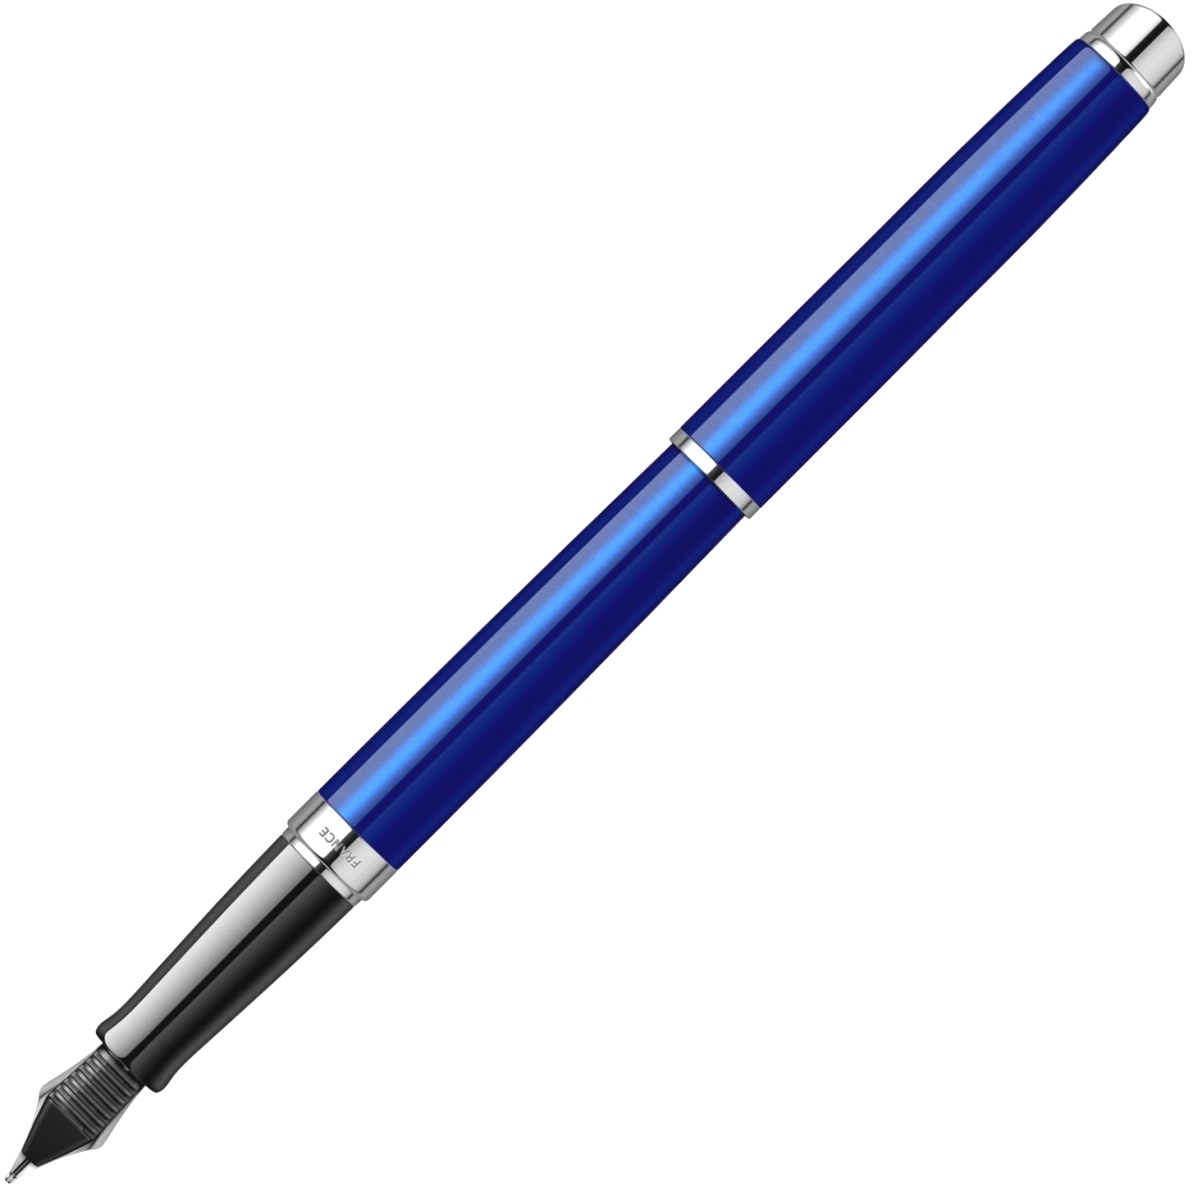 Ручка перьевая Waterman Hemisphere 2018, Bright Blue CT (Перо F), фото 3